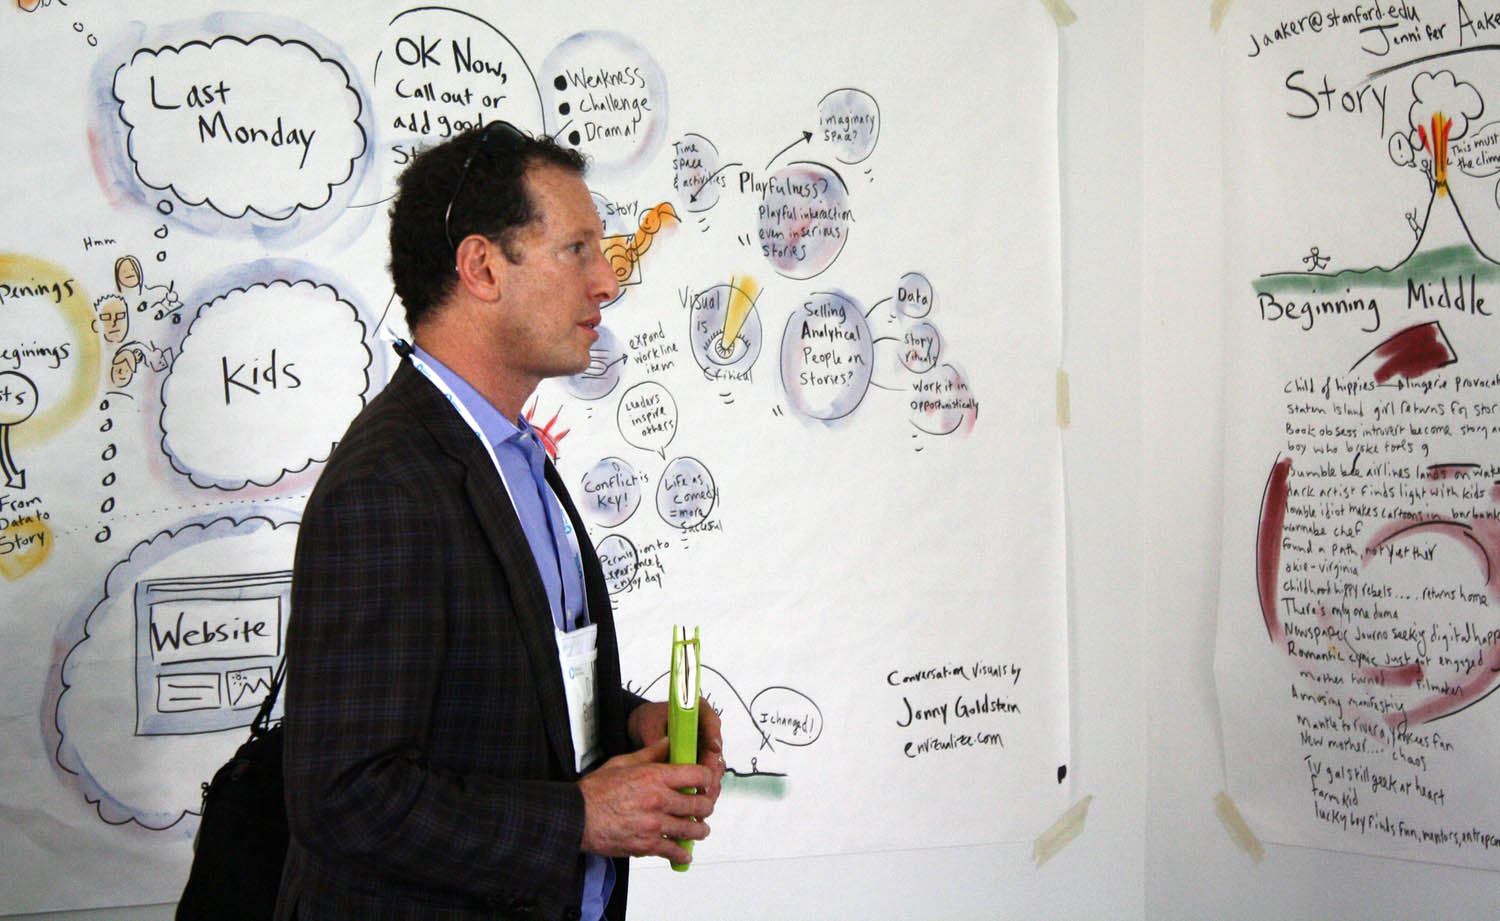 Client: Melcher Media, Event: The Future of Storytelling conference. sector: media and advertising.